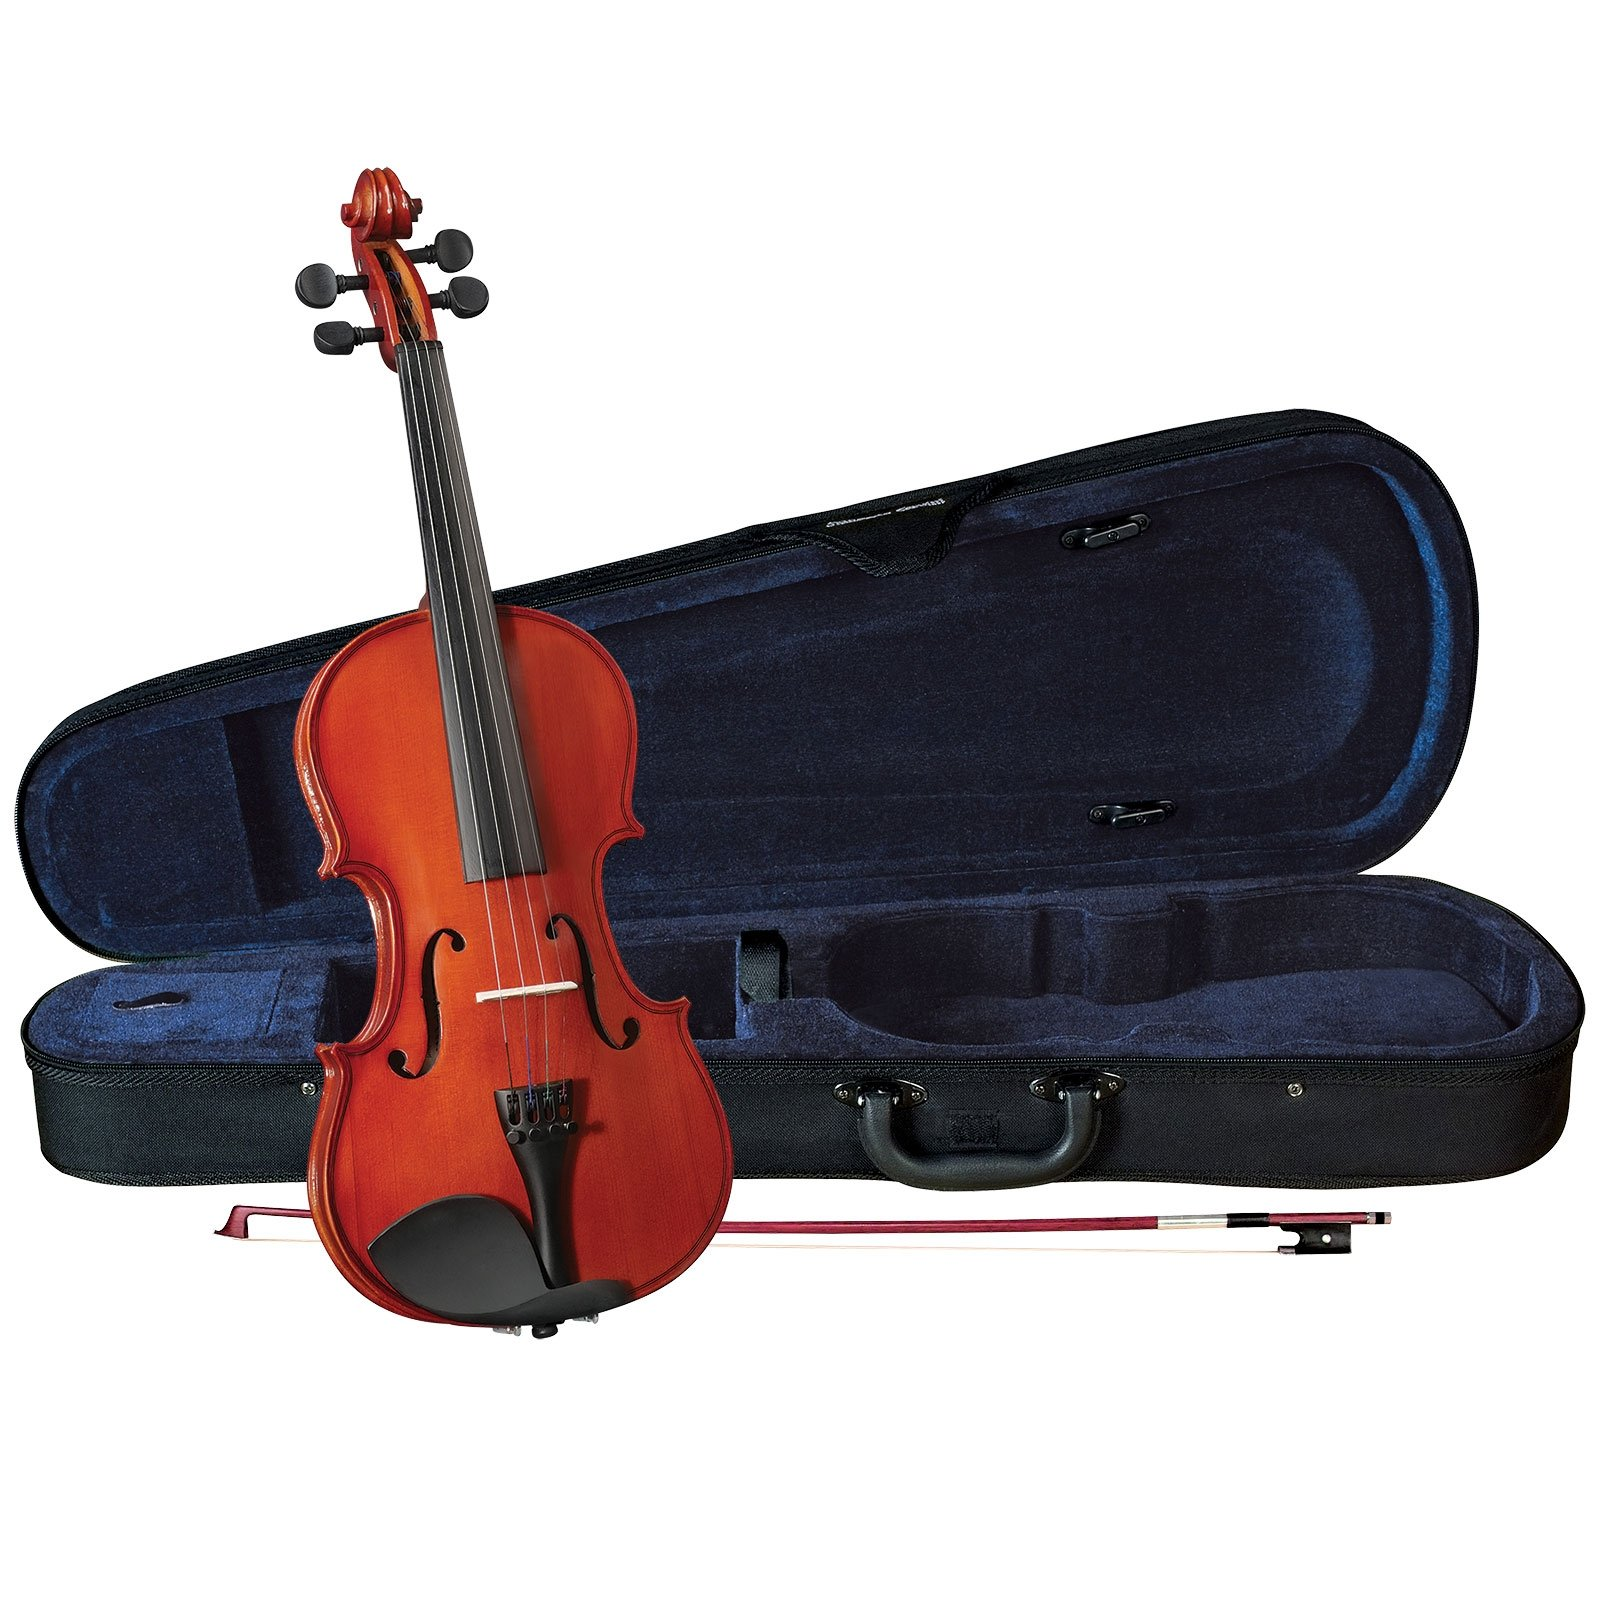 Anton Breton AB-05 Student Violin Outfit  - Traditional Red - 4/4 Size